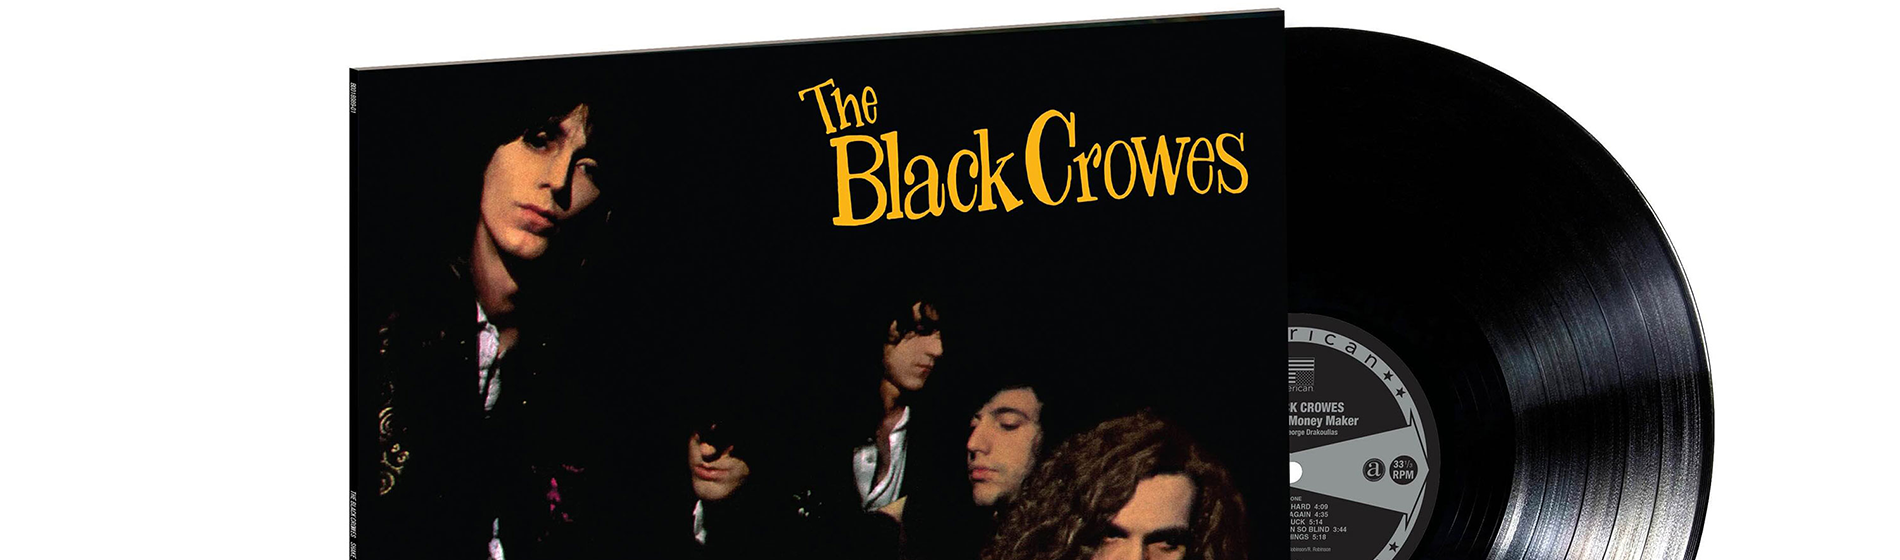 The Black Crowes' Shake Your Money Maker album cover